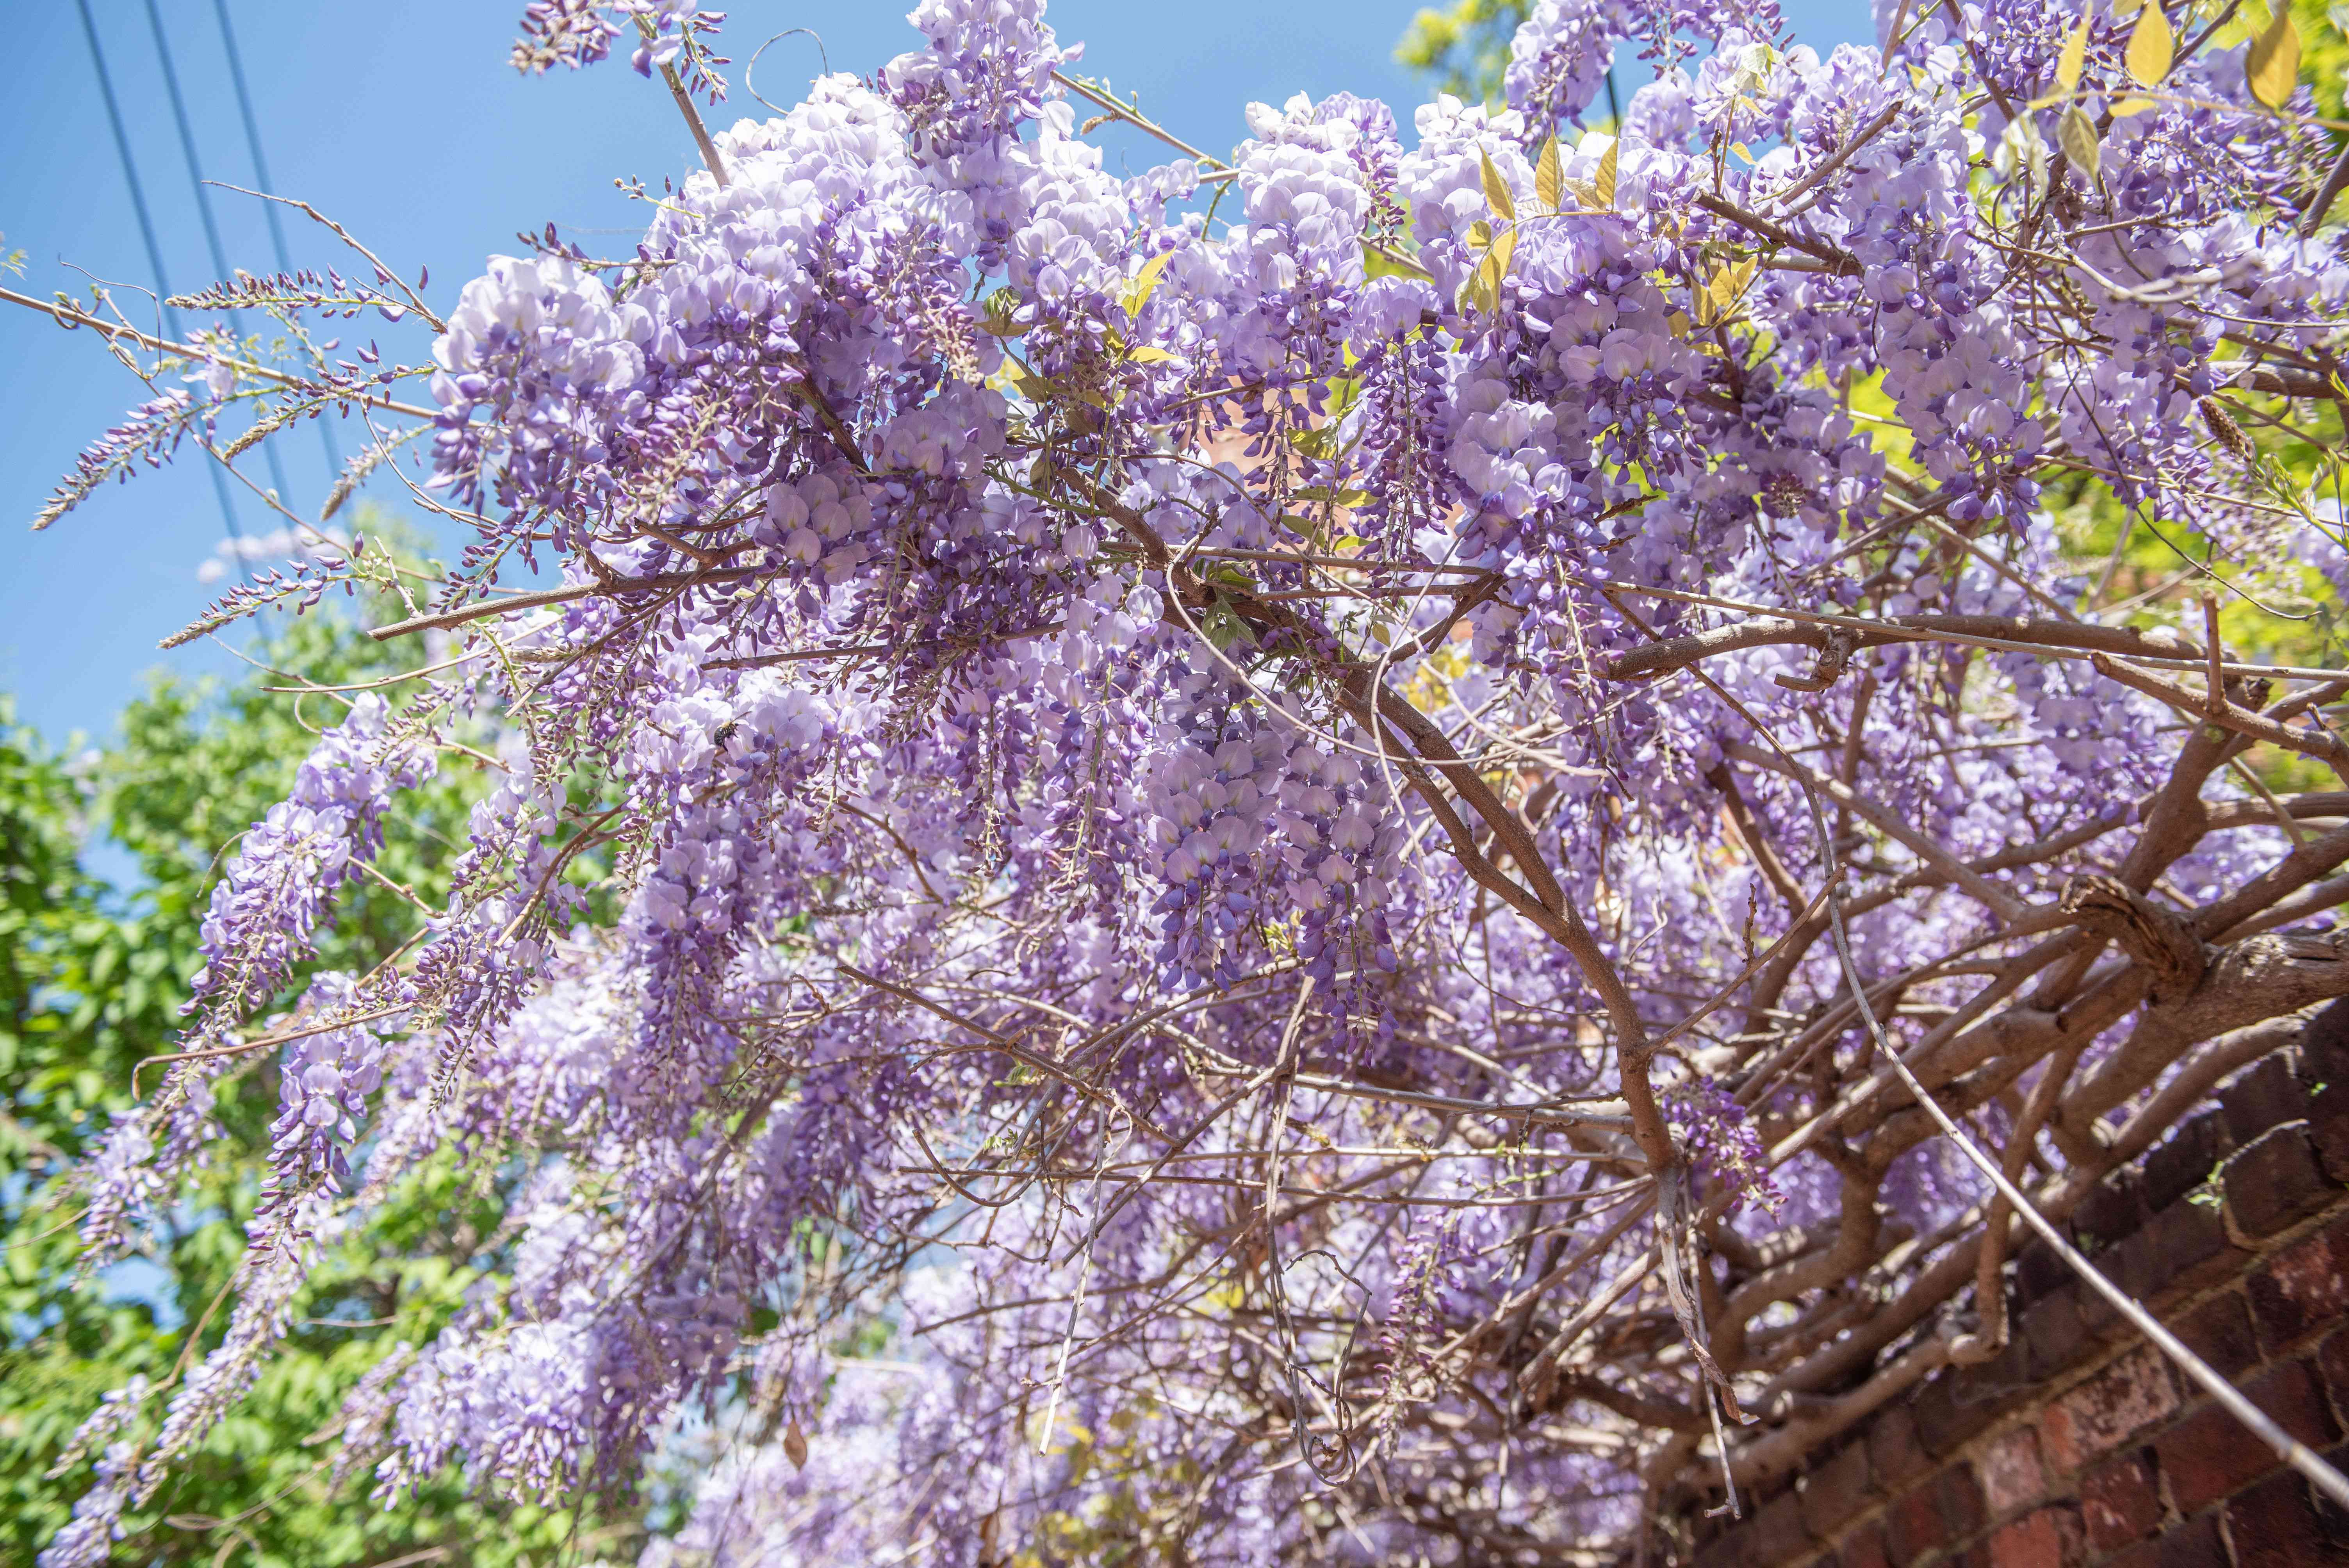 Chinese wisteria twisted vines with large drooping purple flower clusters